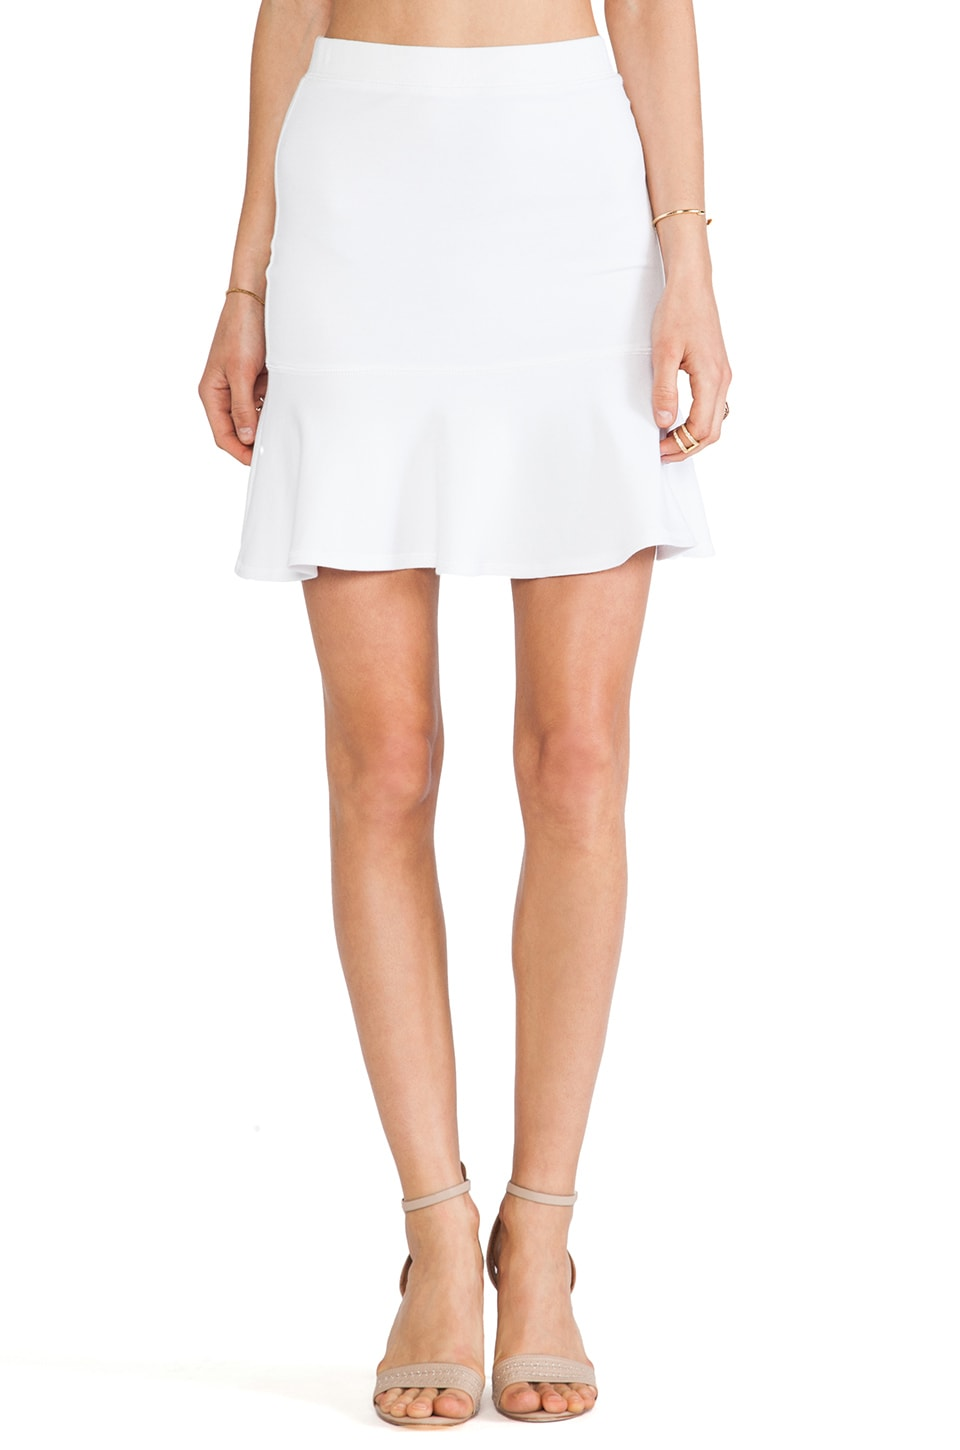 Bailey 44 Scorpion Skirt in White